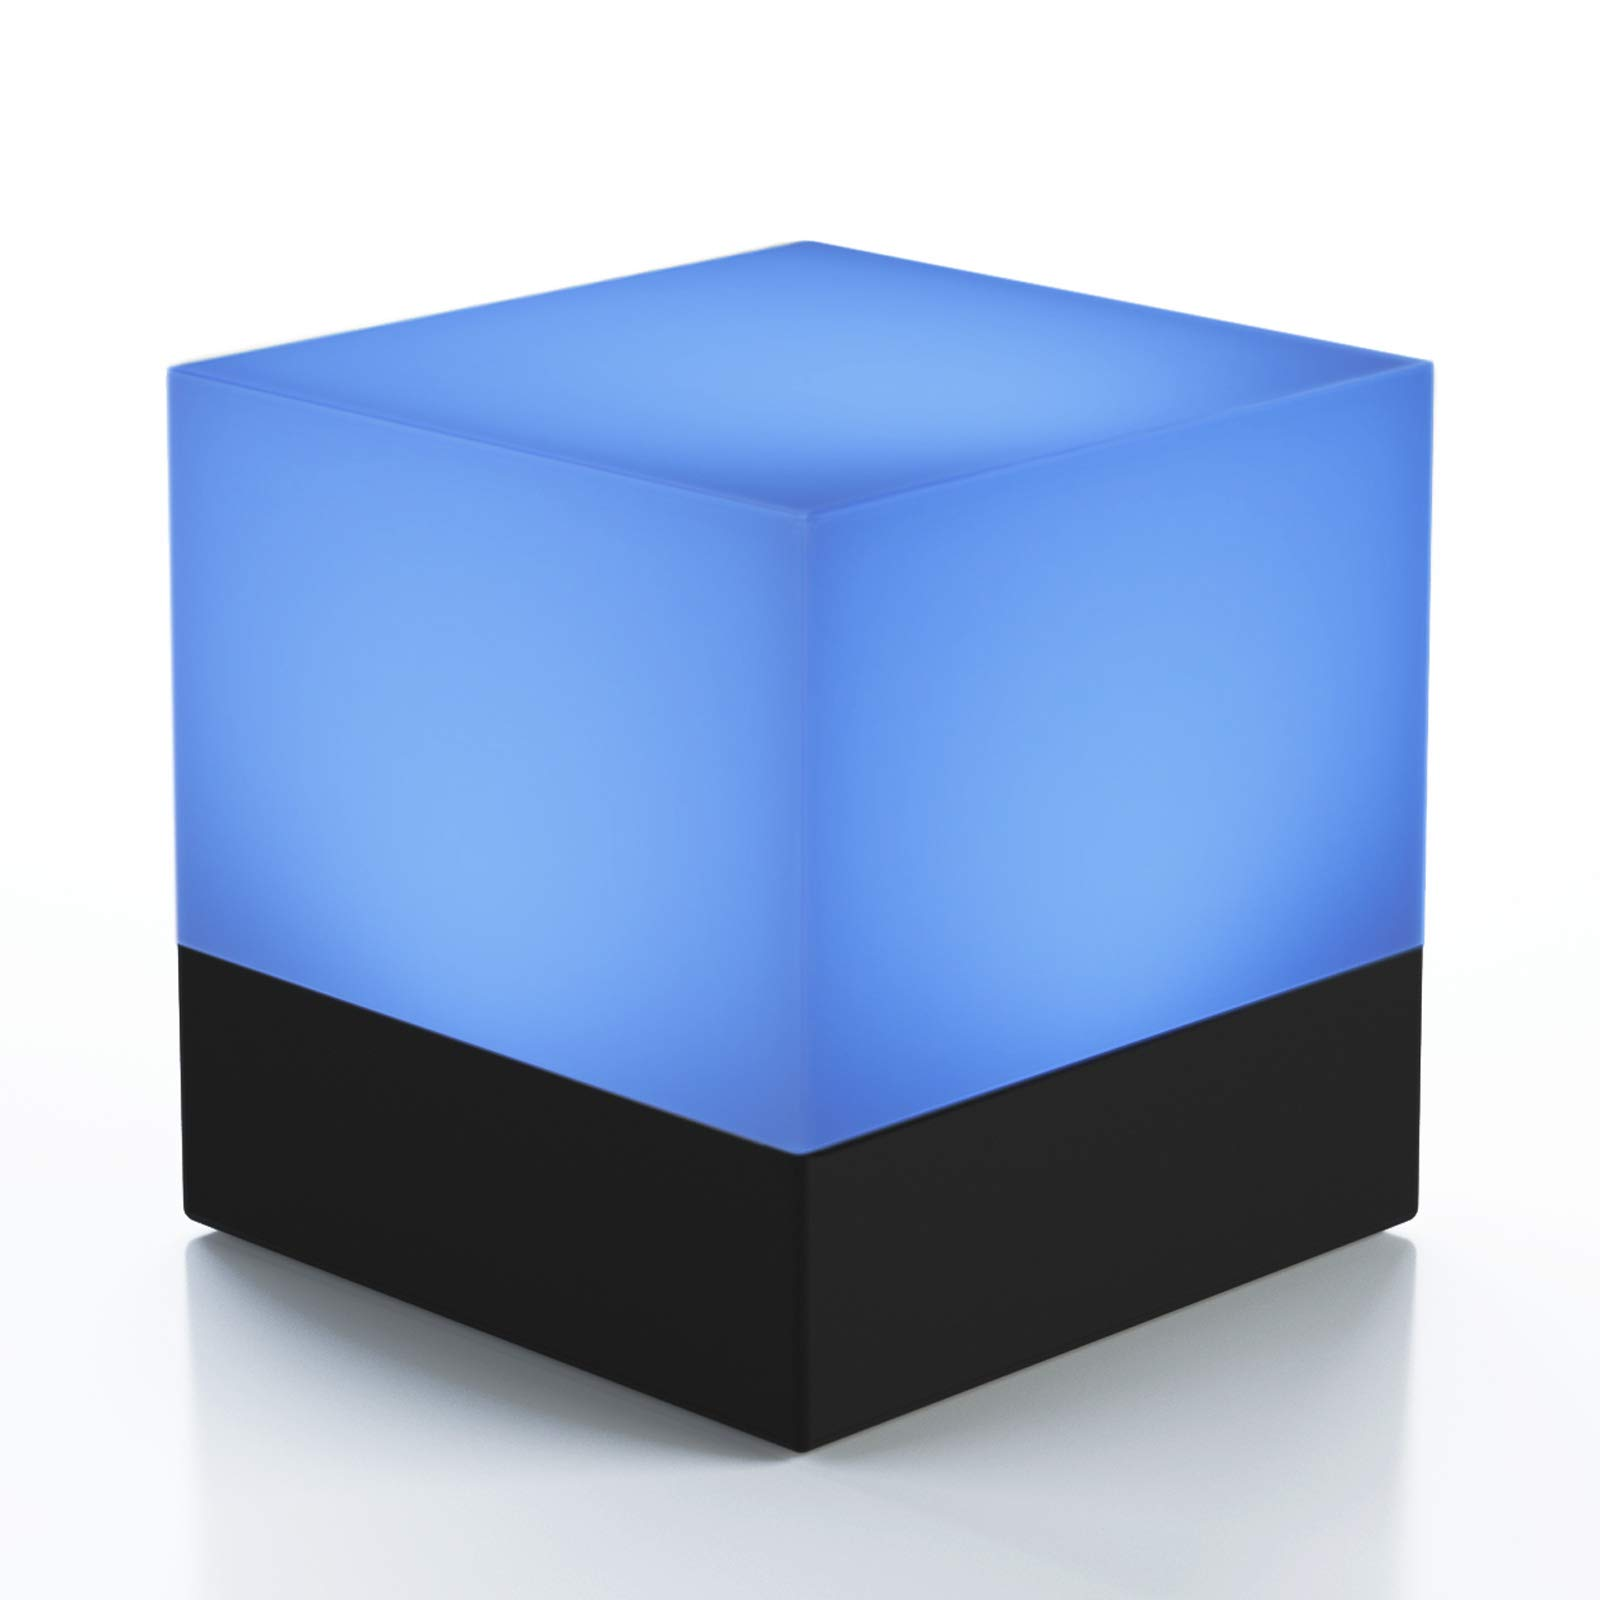 Dimmable, Color Changing LED Cube Bedside Night Light For Kids Bedrooms, Nurseries - Adjustable Mood Table Lamp for Ambiance - Multiple Settings and Colors, Battery Operated - Fun, Portable